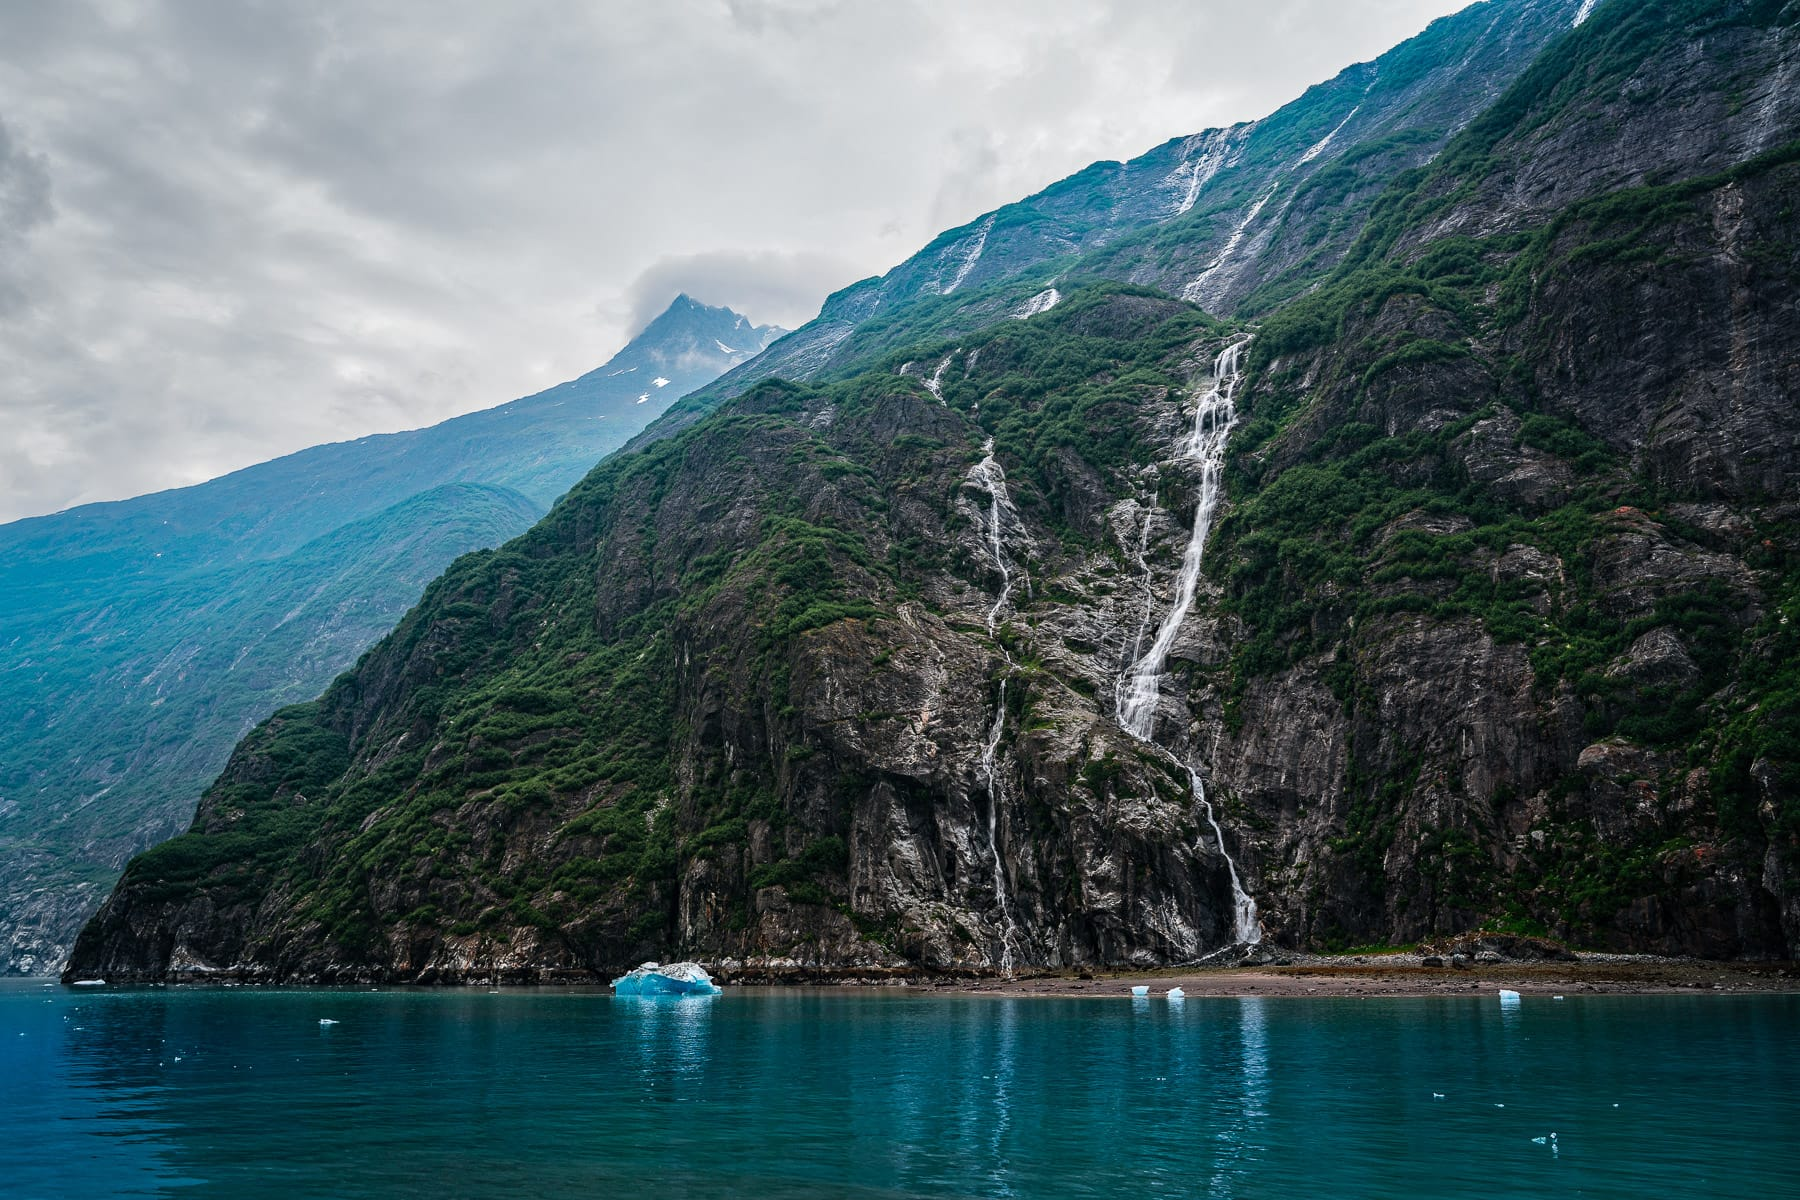 The rugged landscape of Alaska's Tracy Arm Fjord.